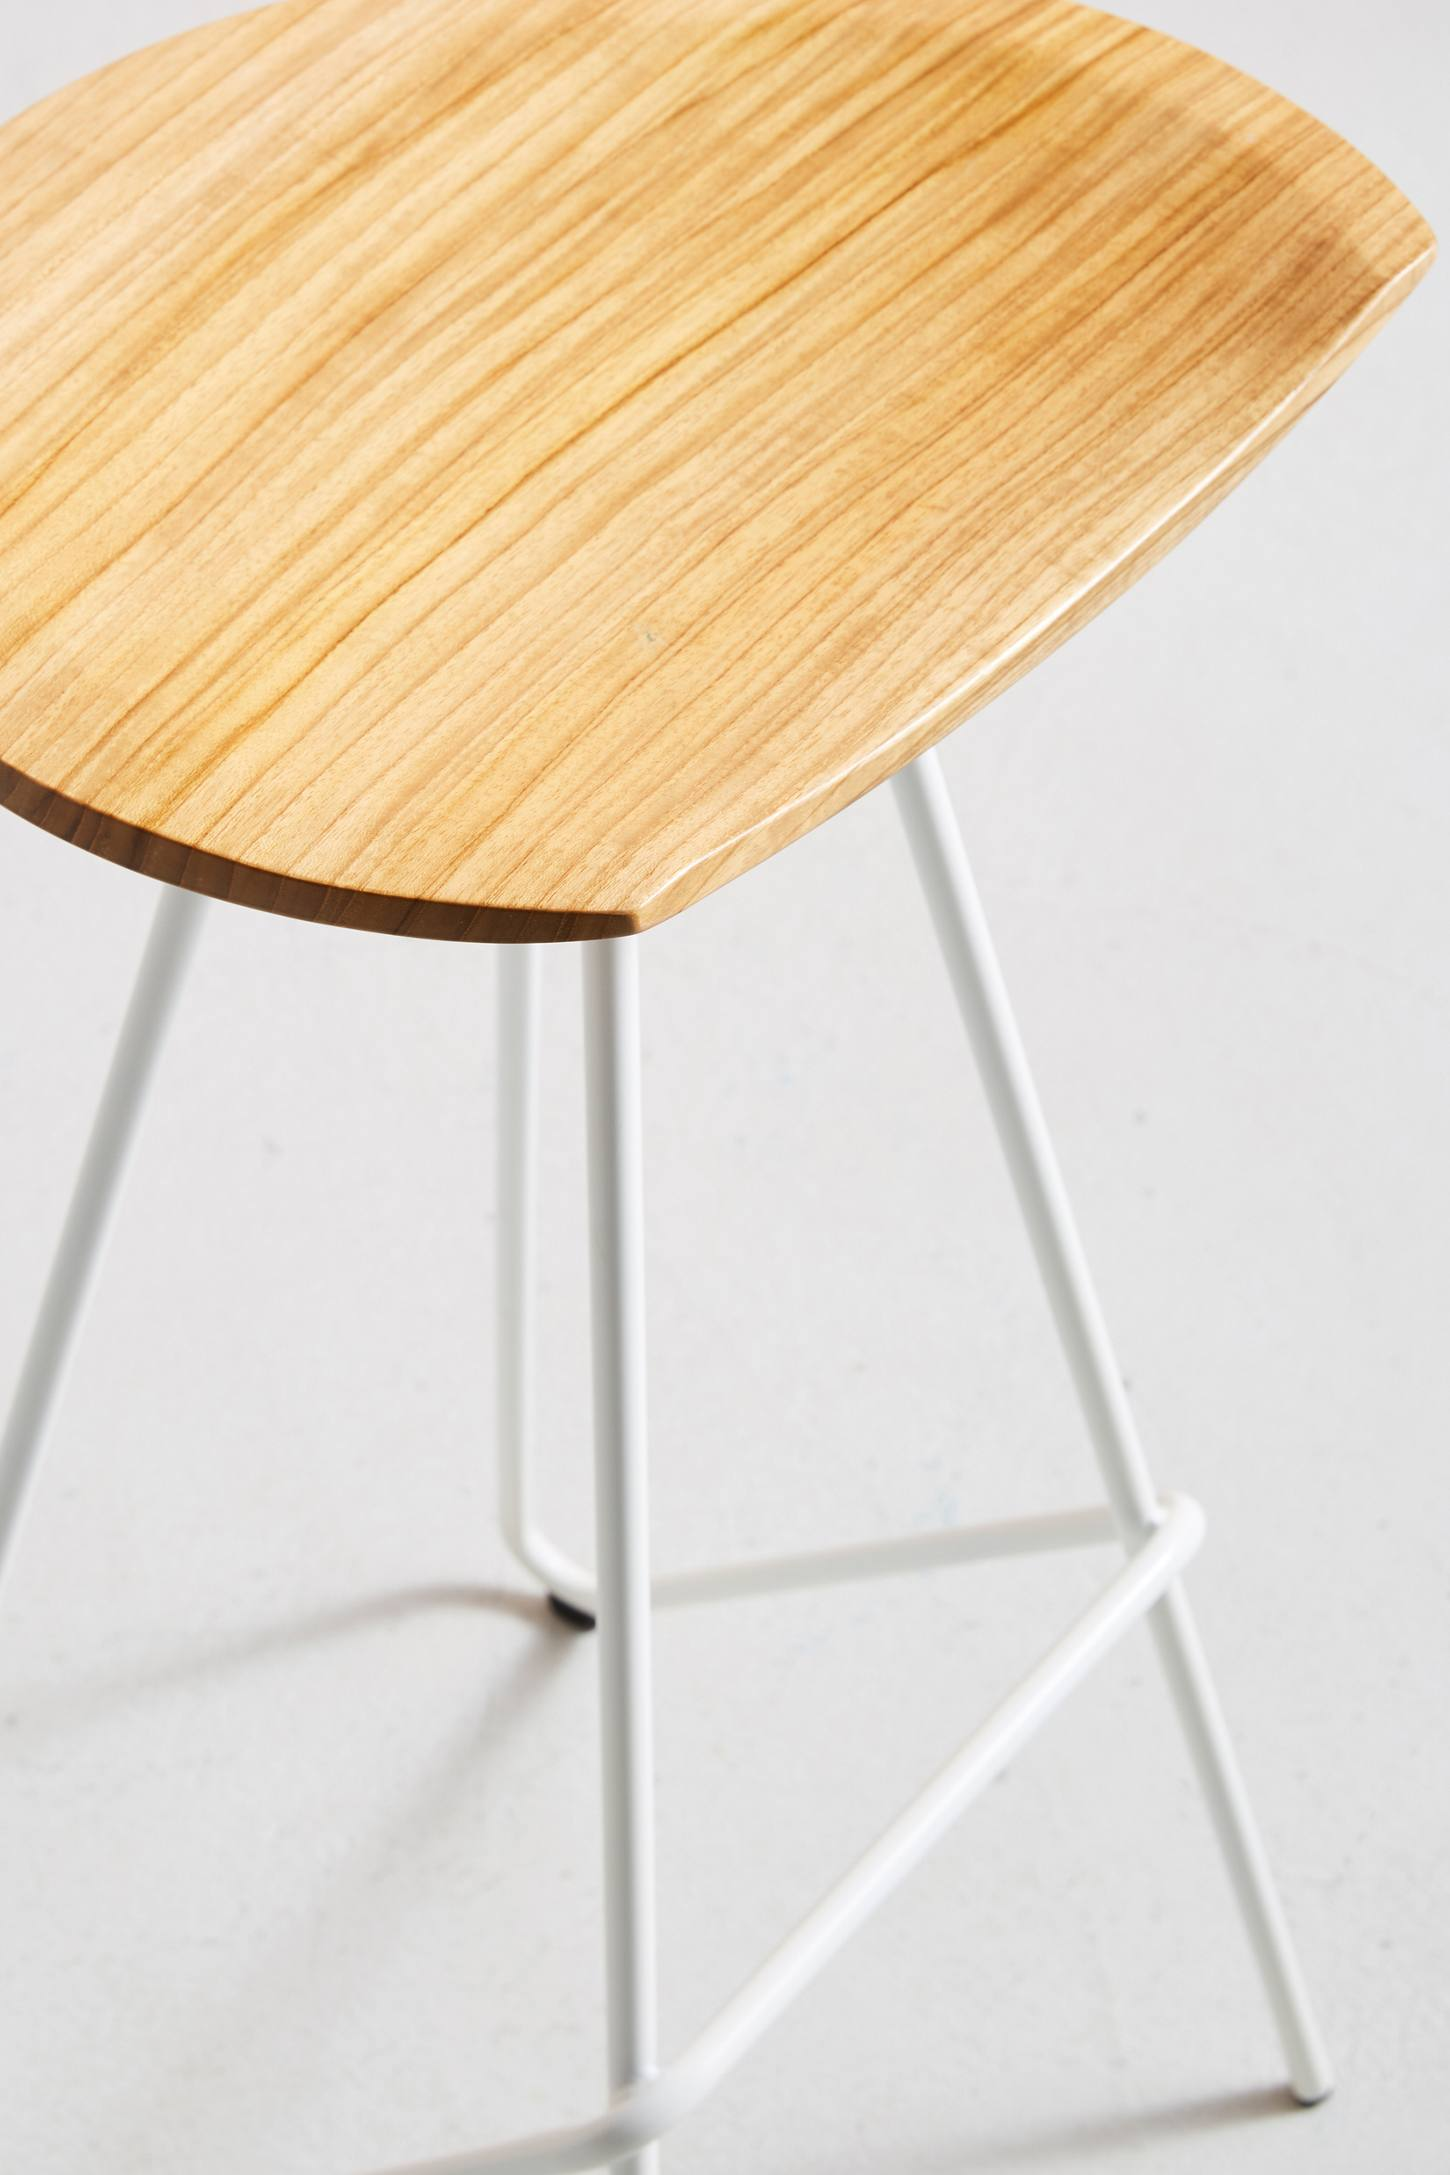 Slide View: 4: Perch Stool